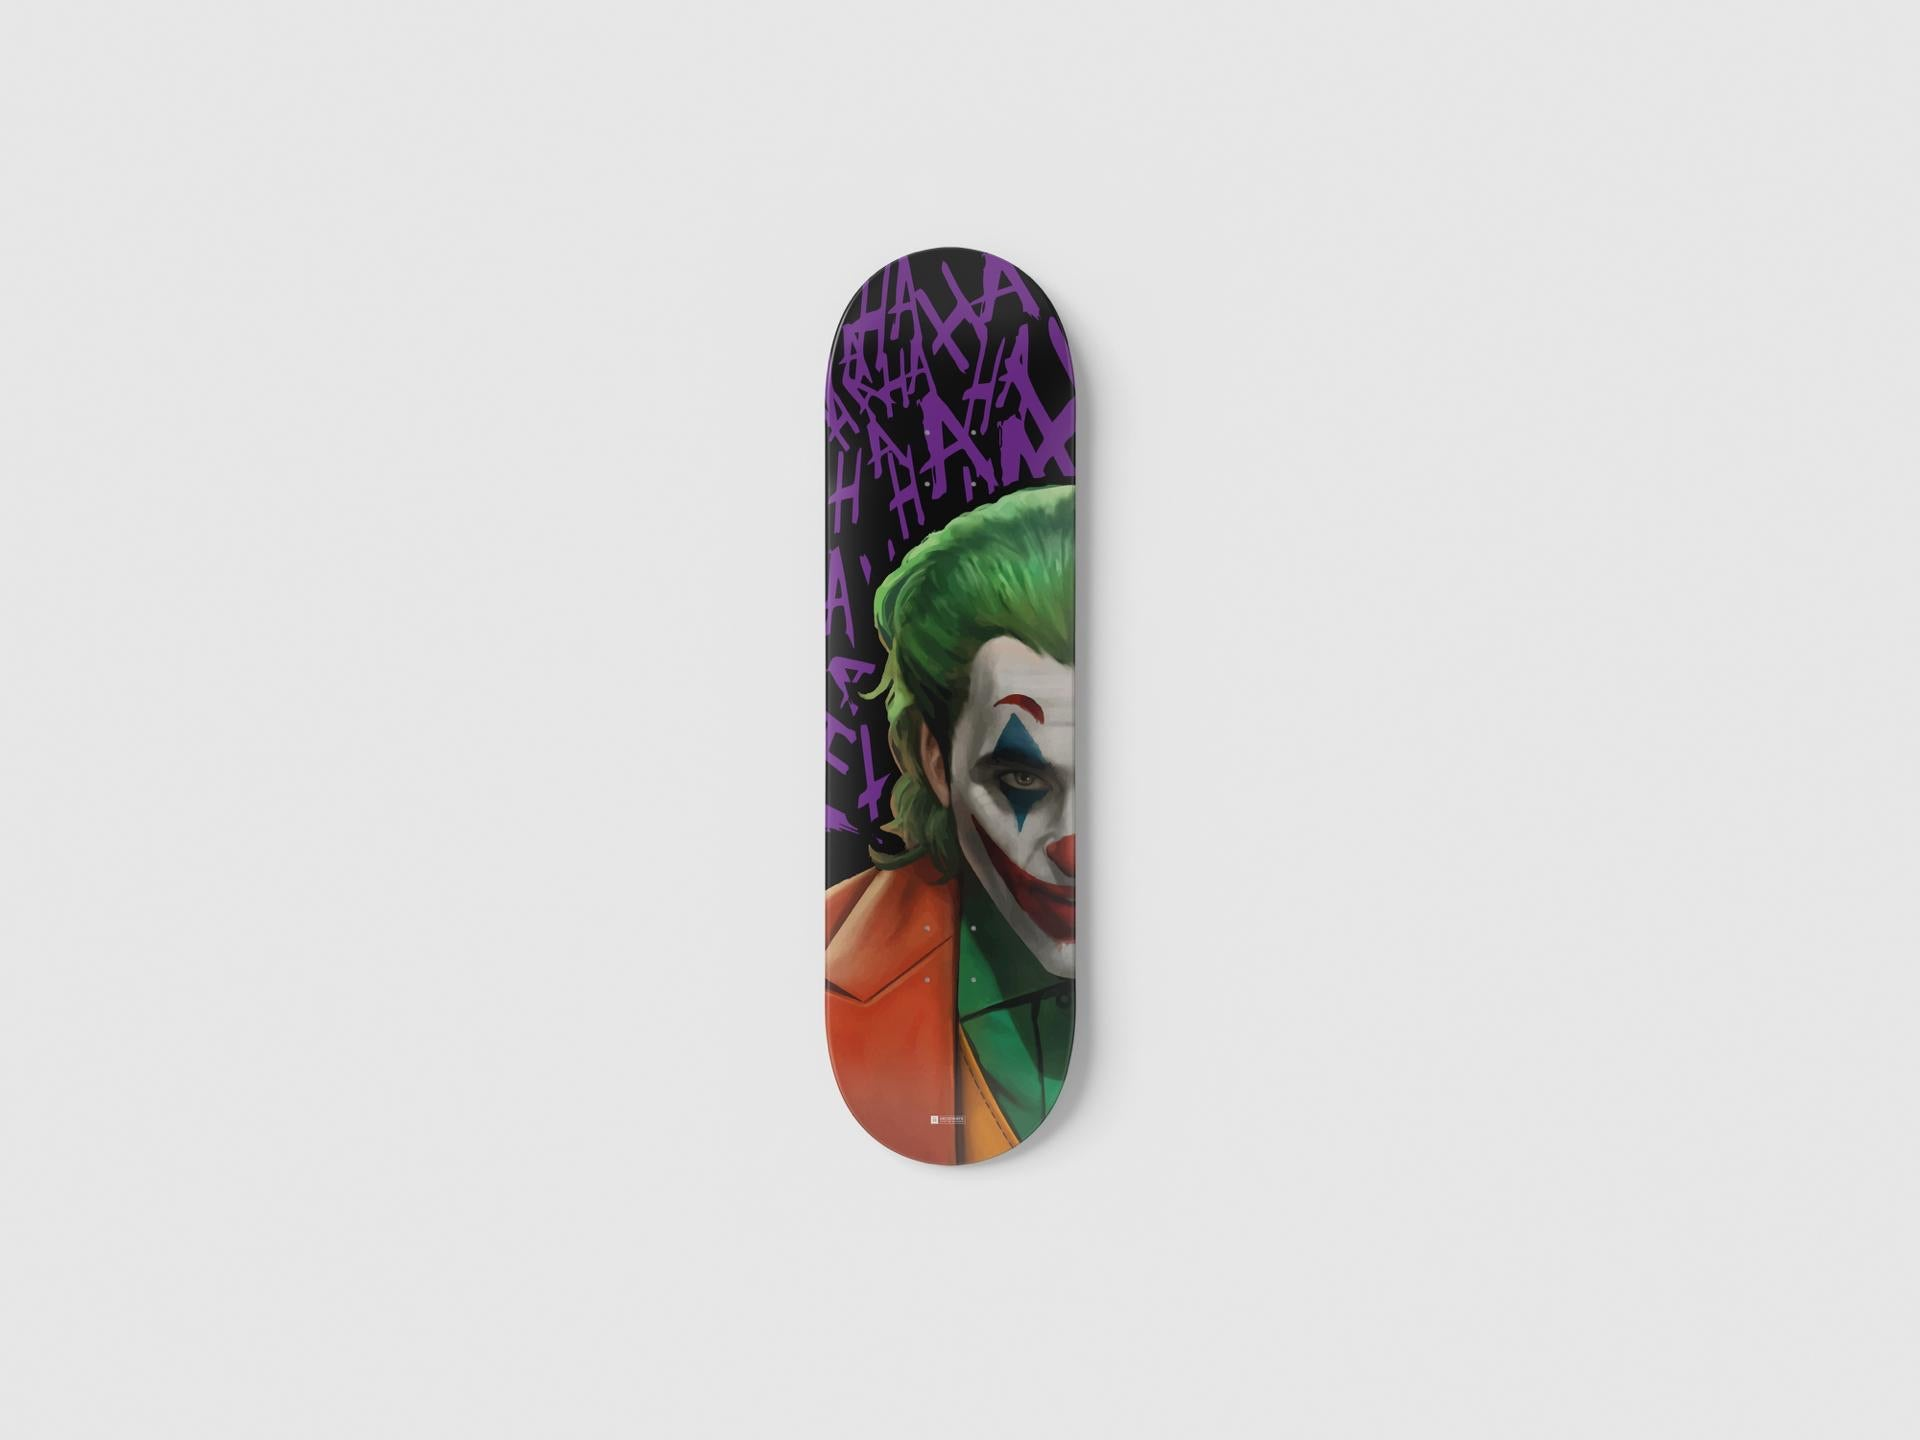 THE JOKER DECK